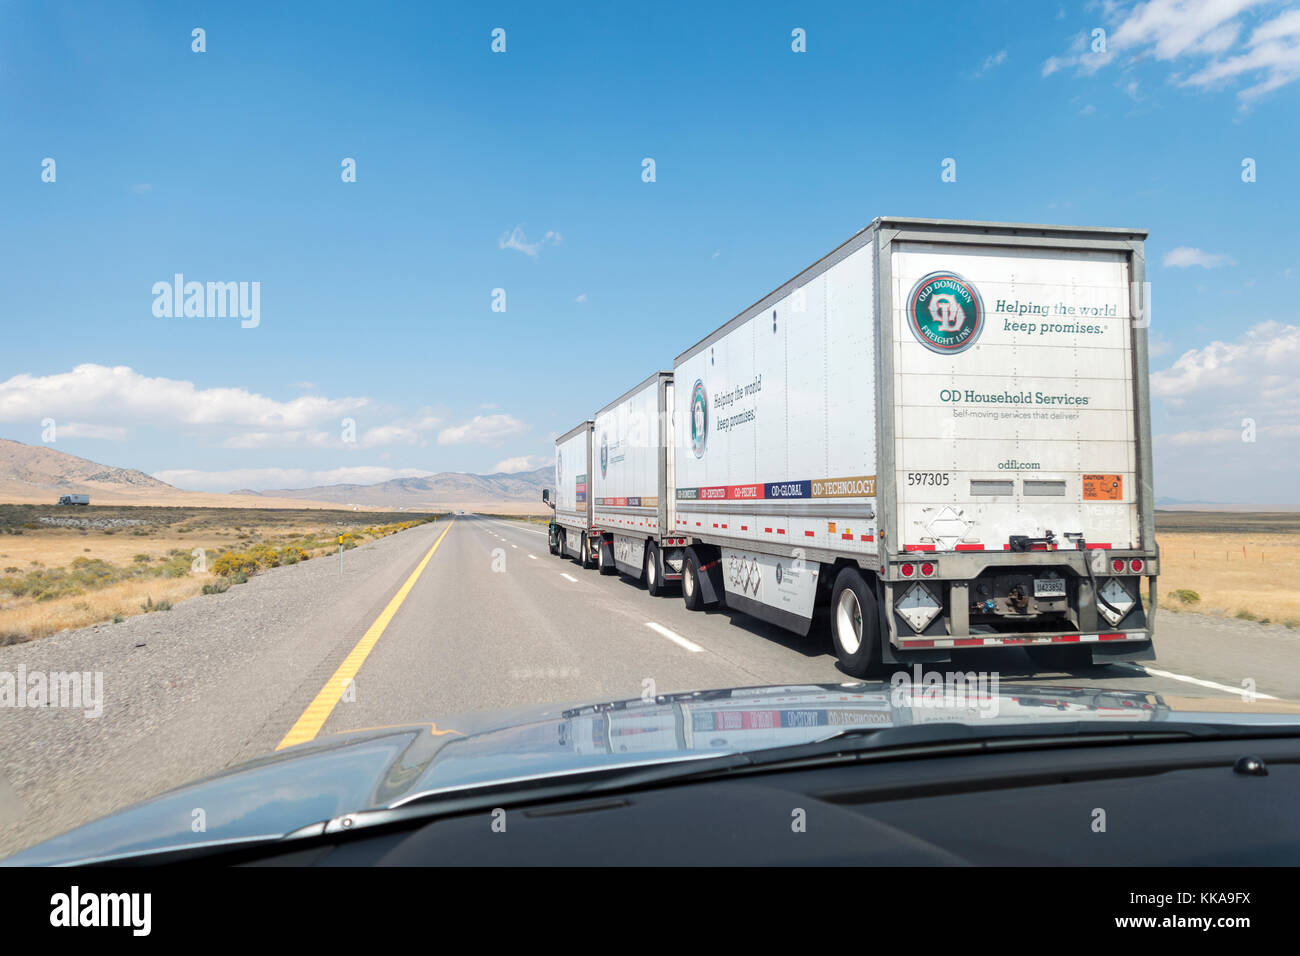 Old Dominion Freight Line Triple Trailer Combination Road Train on Interstate I-80 in Nevada - Stock Image